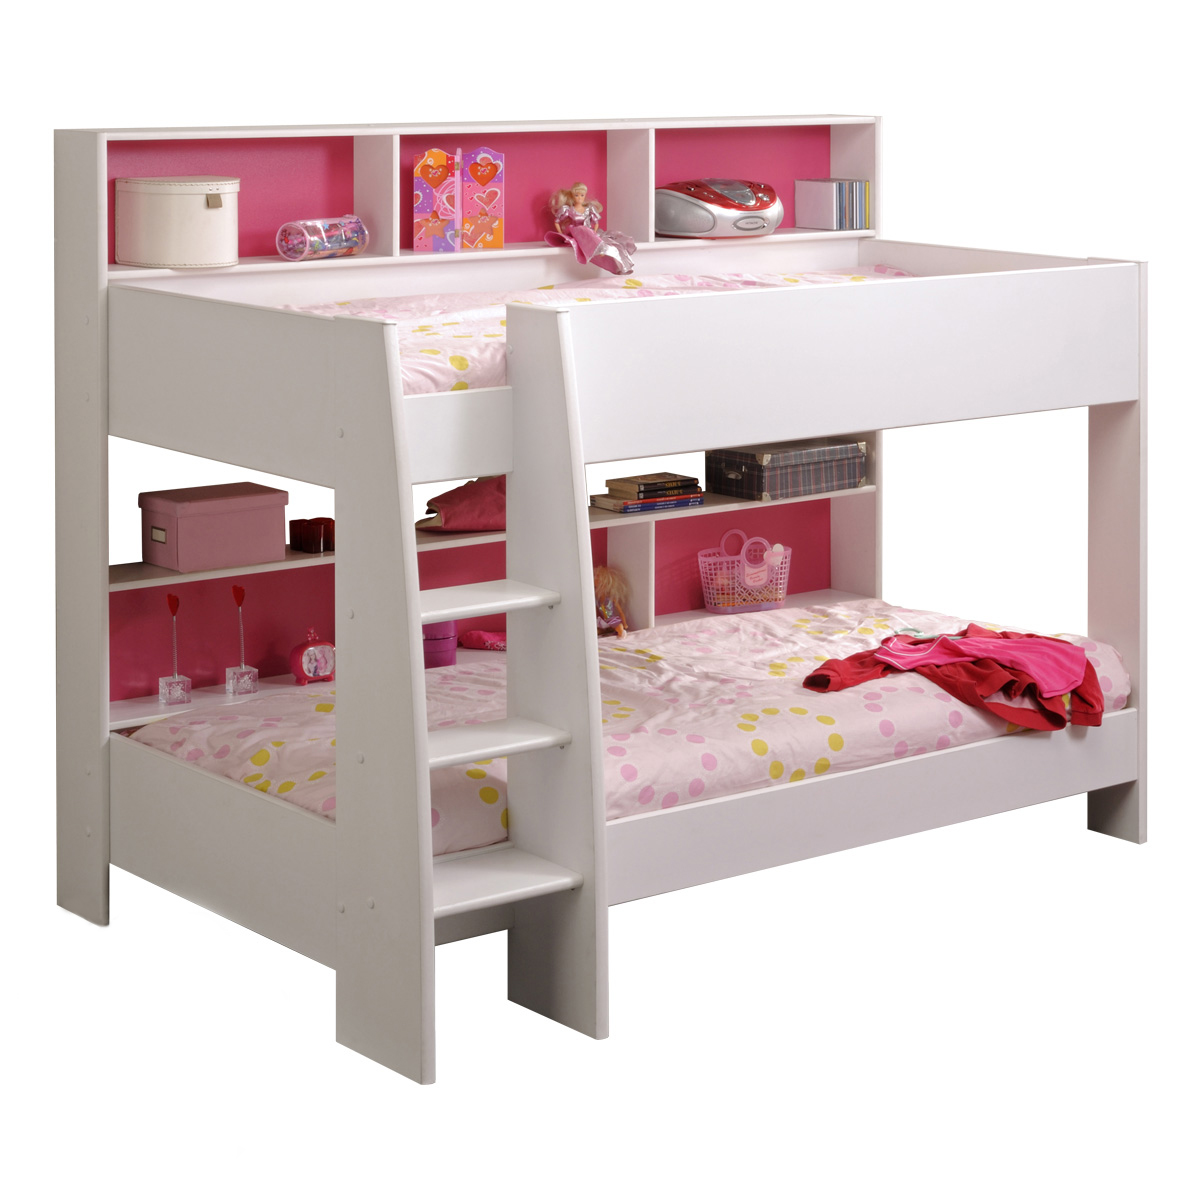 etagenbett tam tam hochbett kinderzimmer jugendbett in weiss mit leiter ebay. Black Bedroom Furniture Sets. Home Design Ideas